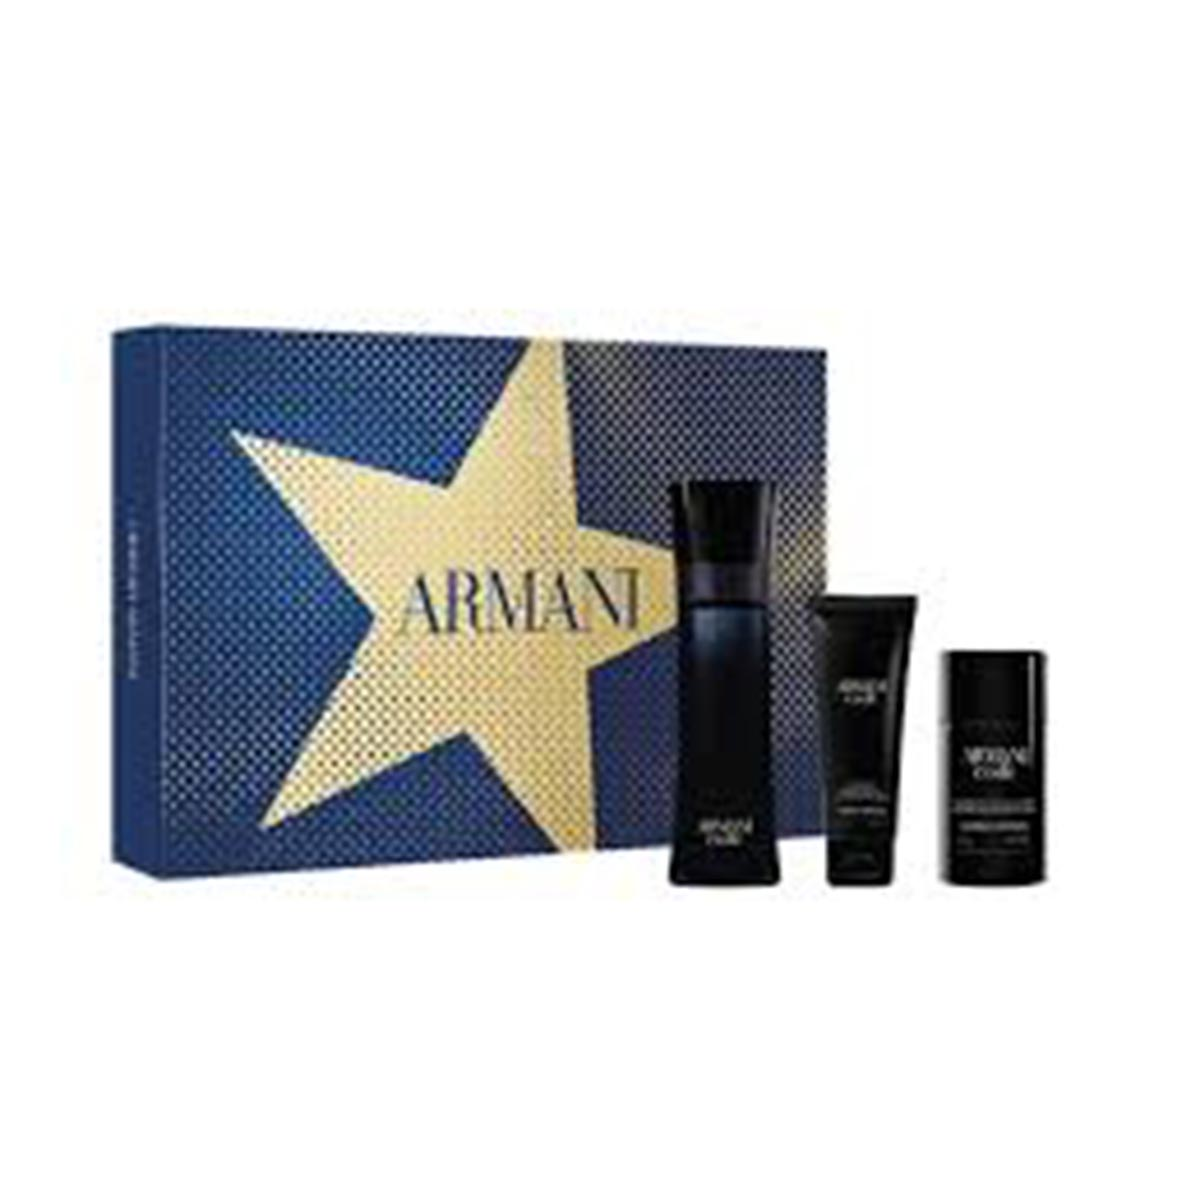 Giorgio armani code eau de toilette for men 125ml vaporizador gel de ba o 75ml desodorante 75ml